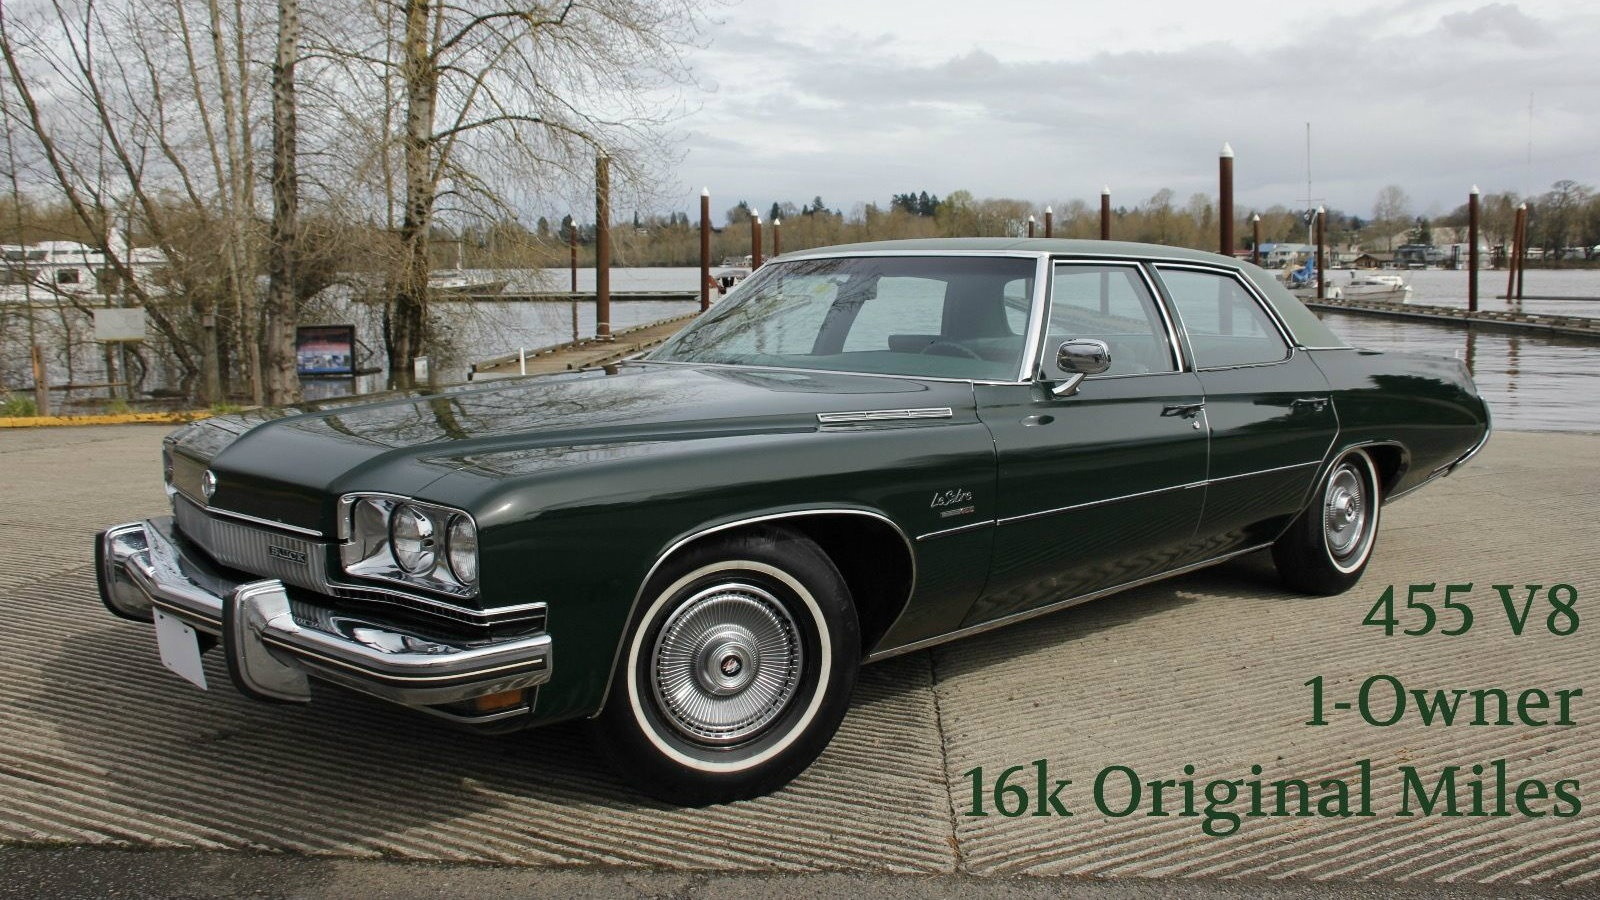 Plain Green Wrapper! 1973 Buick LeSabre With 16k Miles